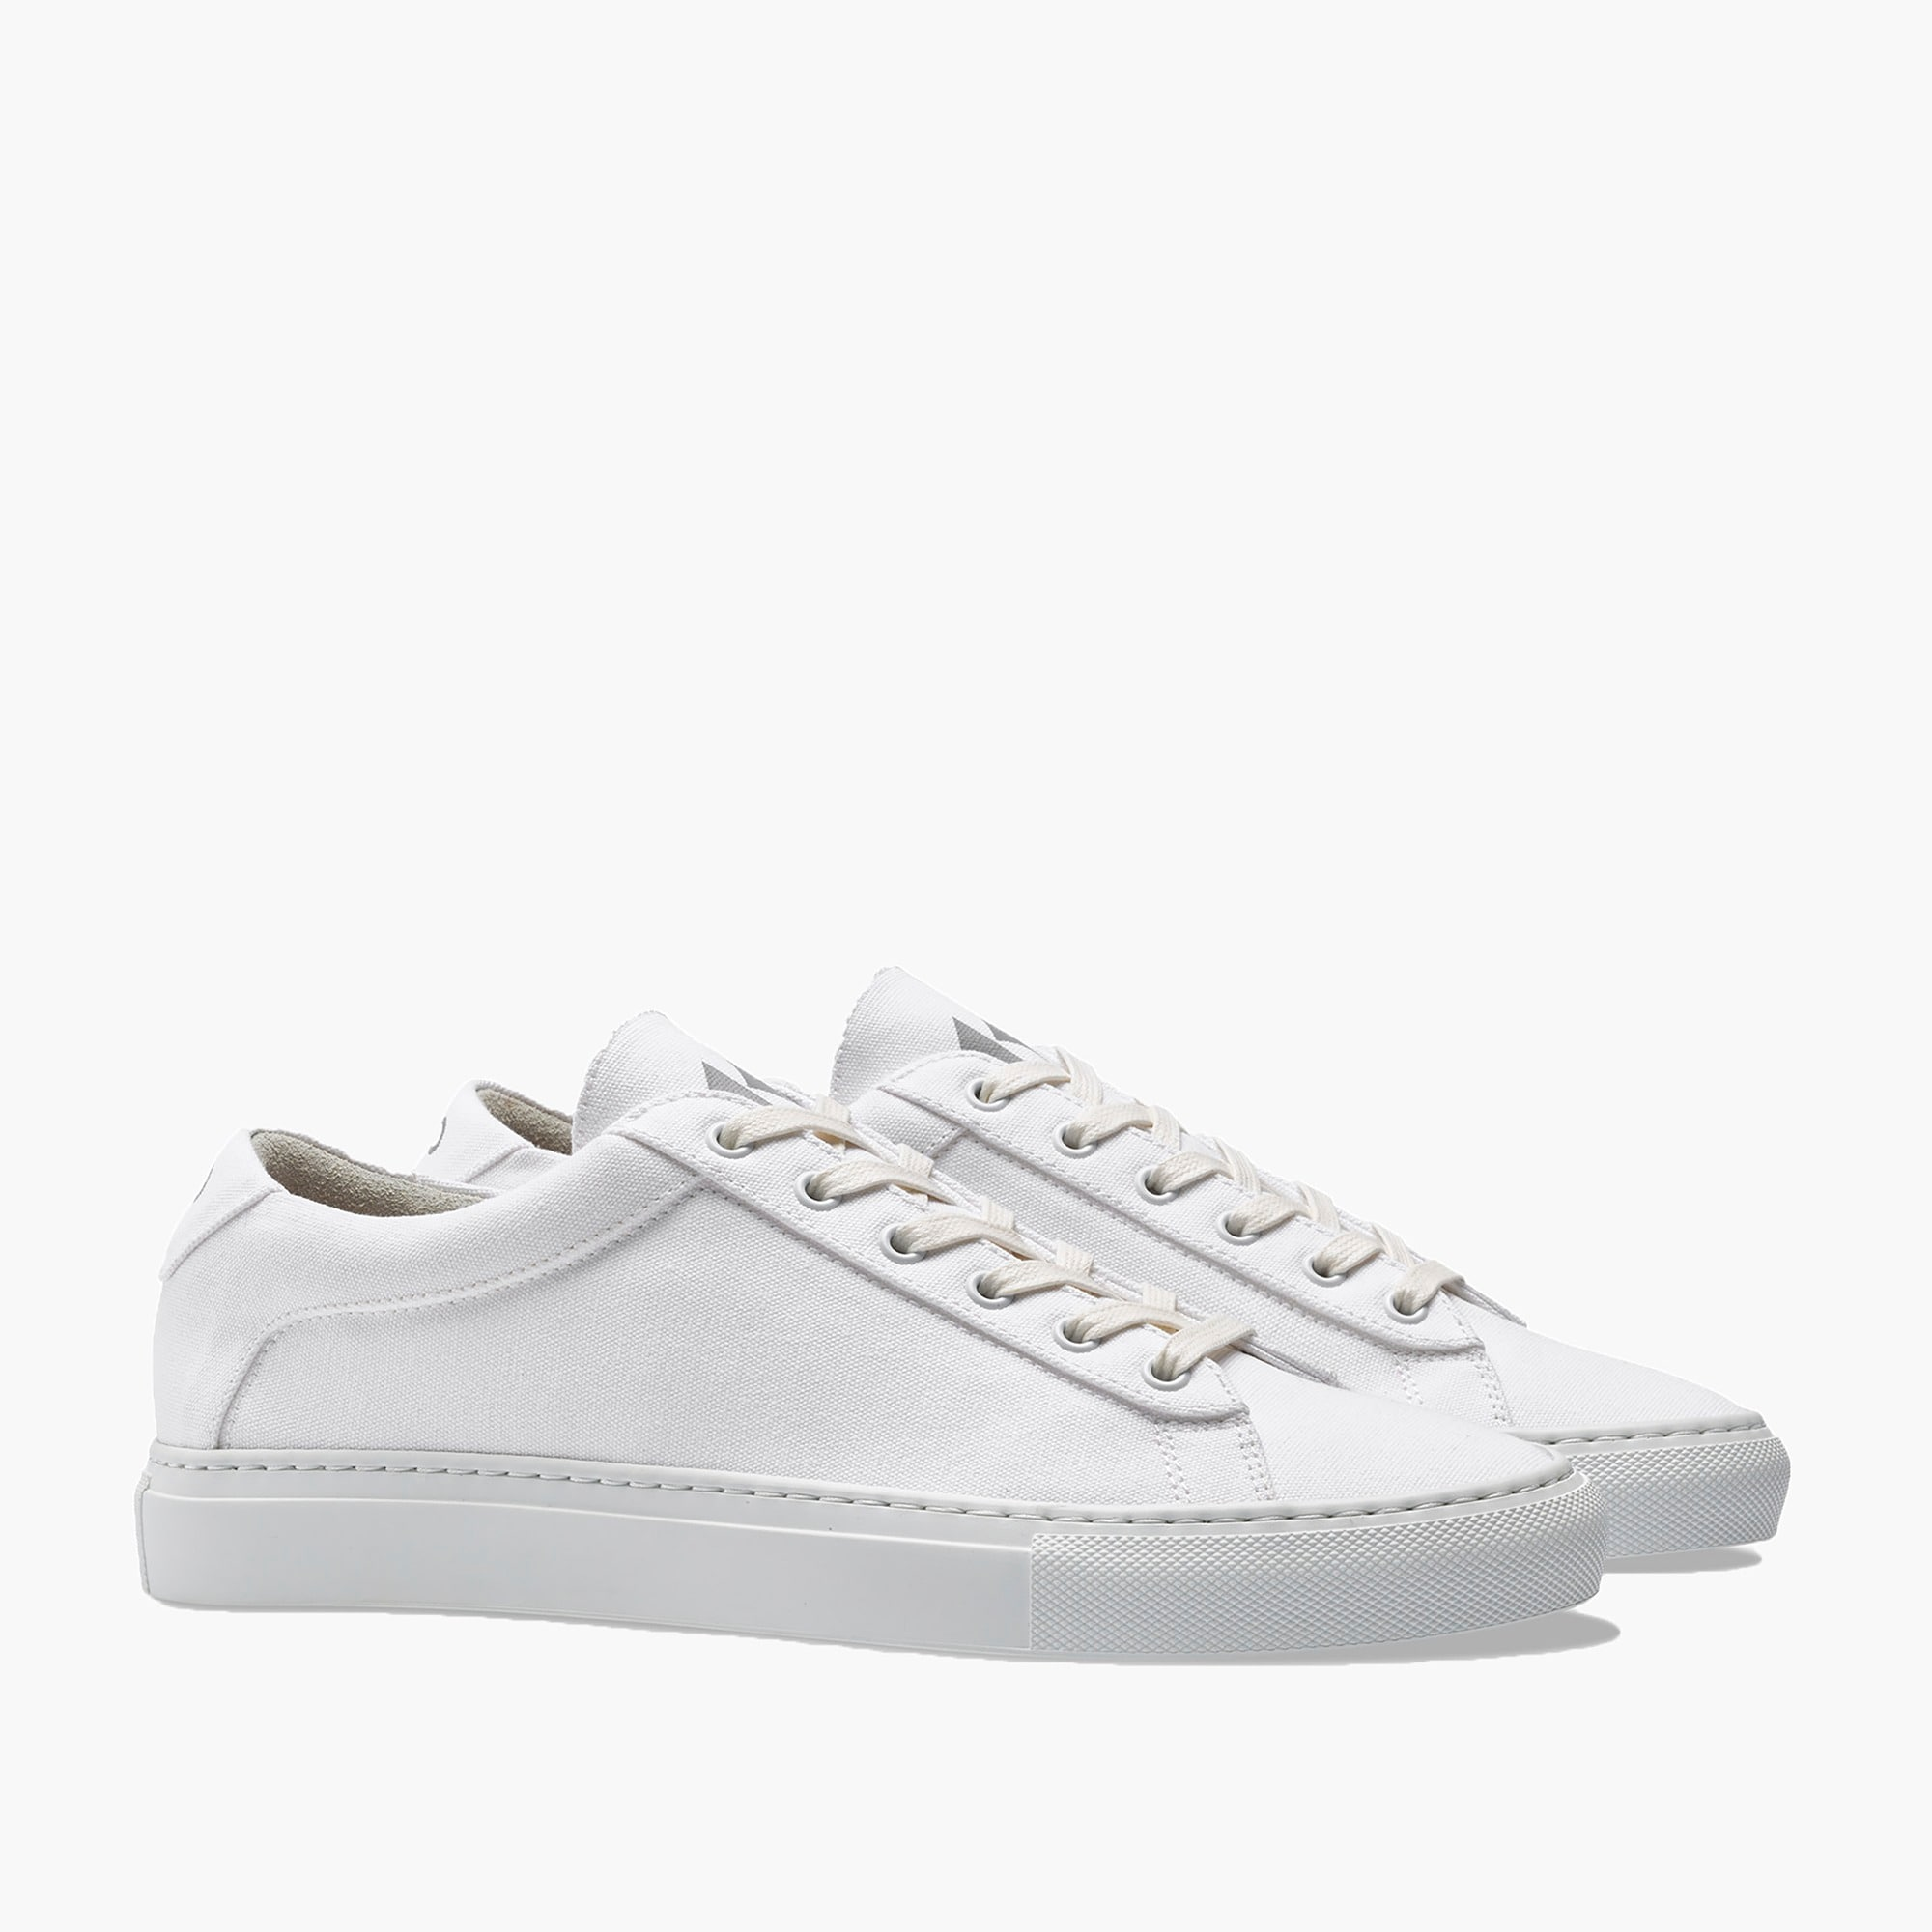 Unisex Koio Capri Bianco canvas sneakers women j.crew in good company c